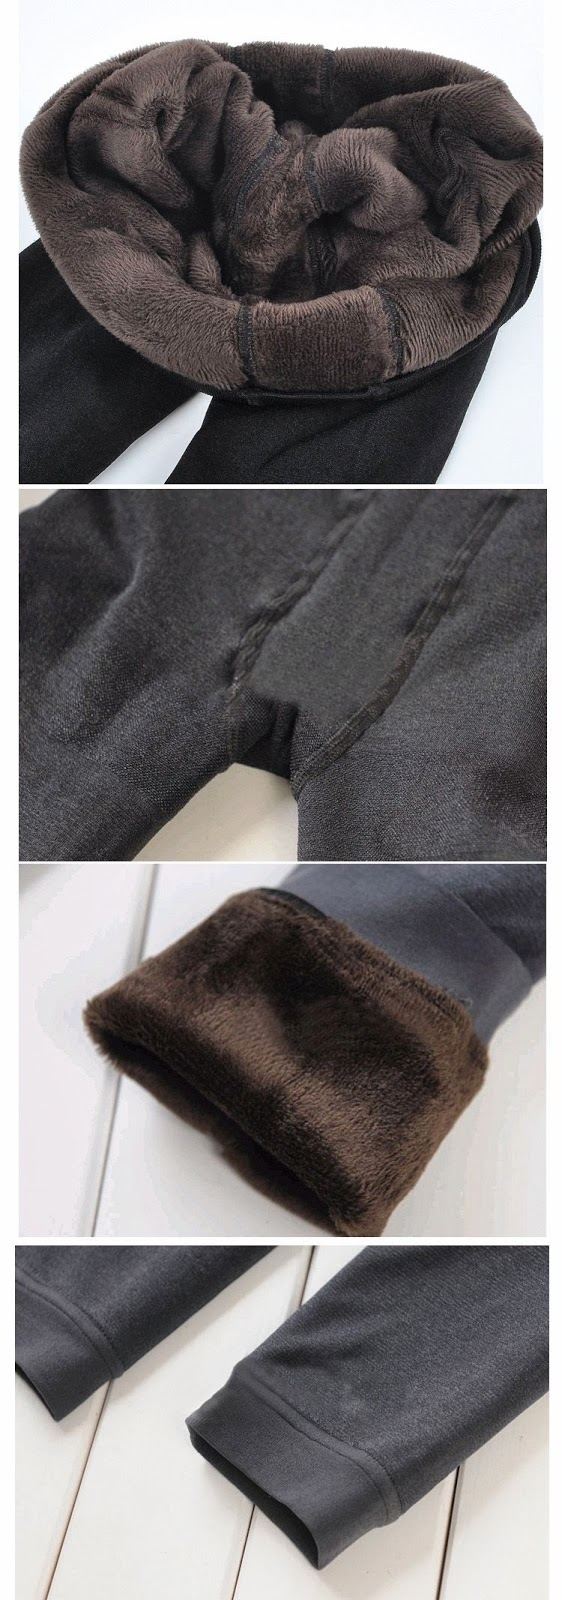 Pepperminter Travelogue Planning For My Korea Winter Trip In 2013 Thermal Legging Tebal The Picture Promises A Really Thick Fur Lining And Is Able To Withstand Though I Had Doubts About It But Went Ahead With